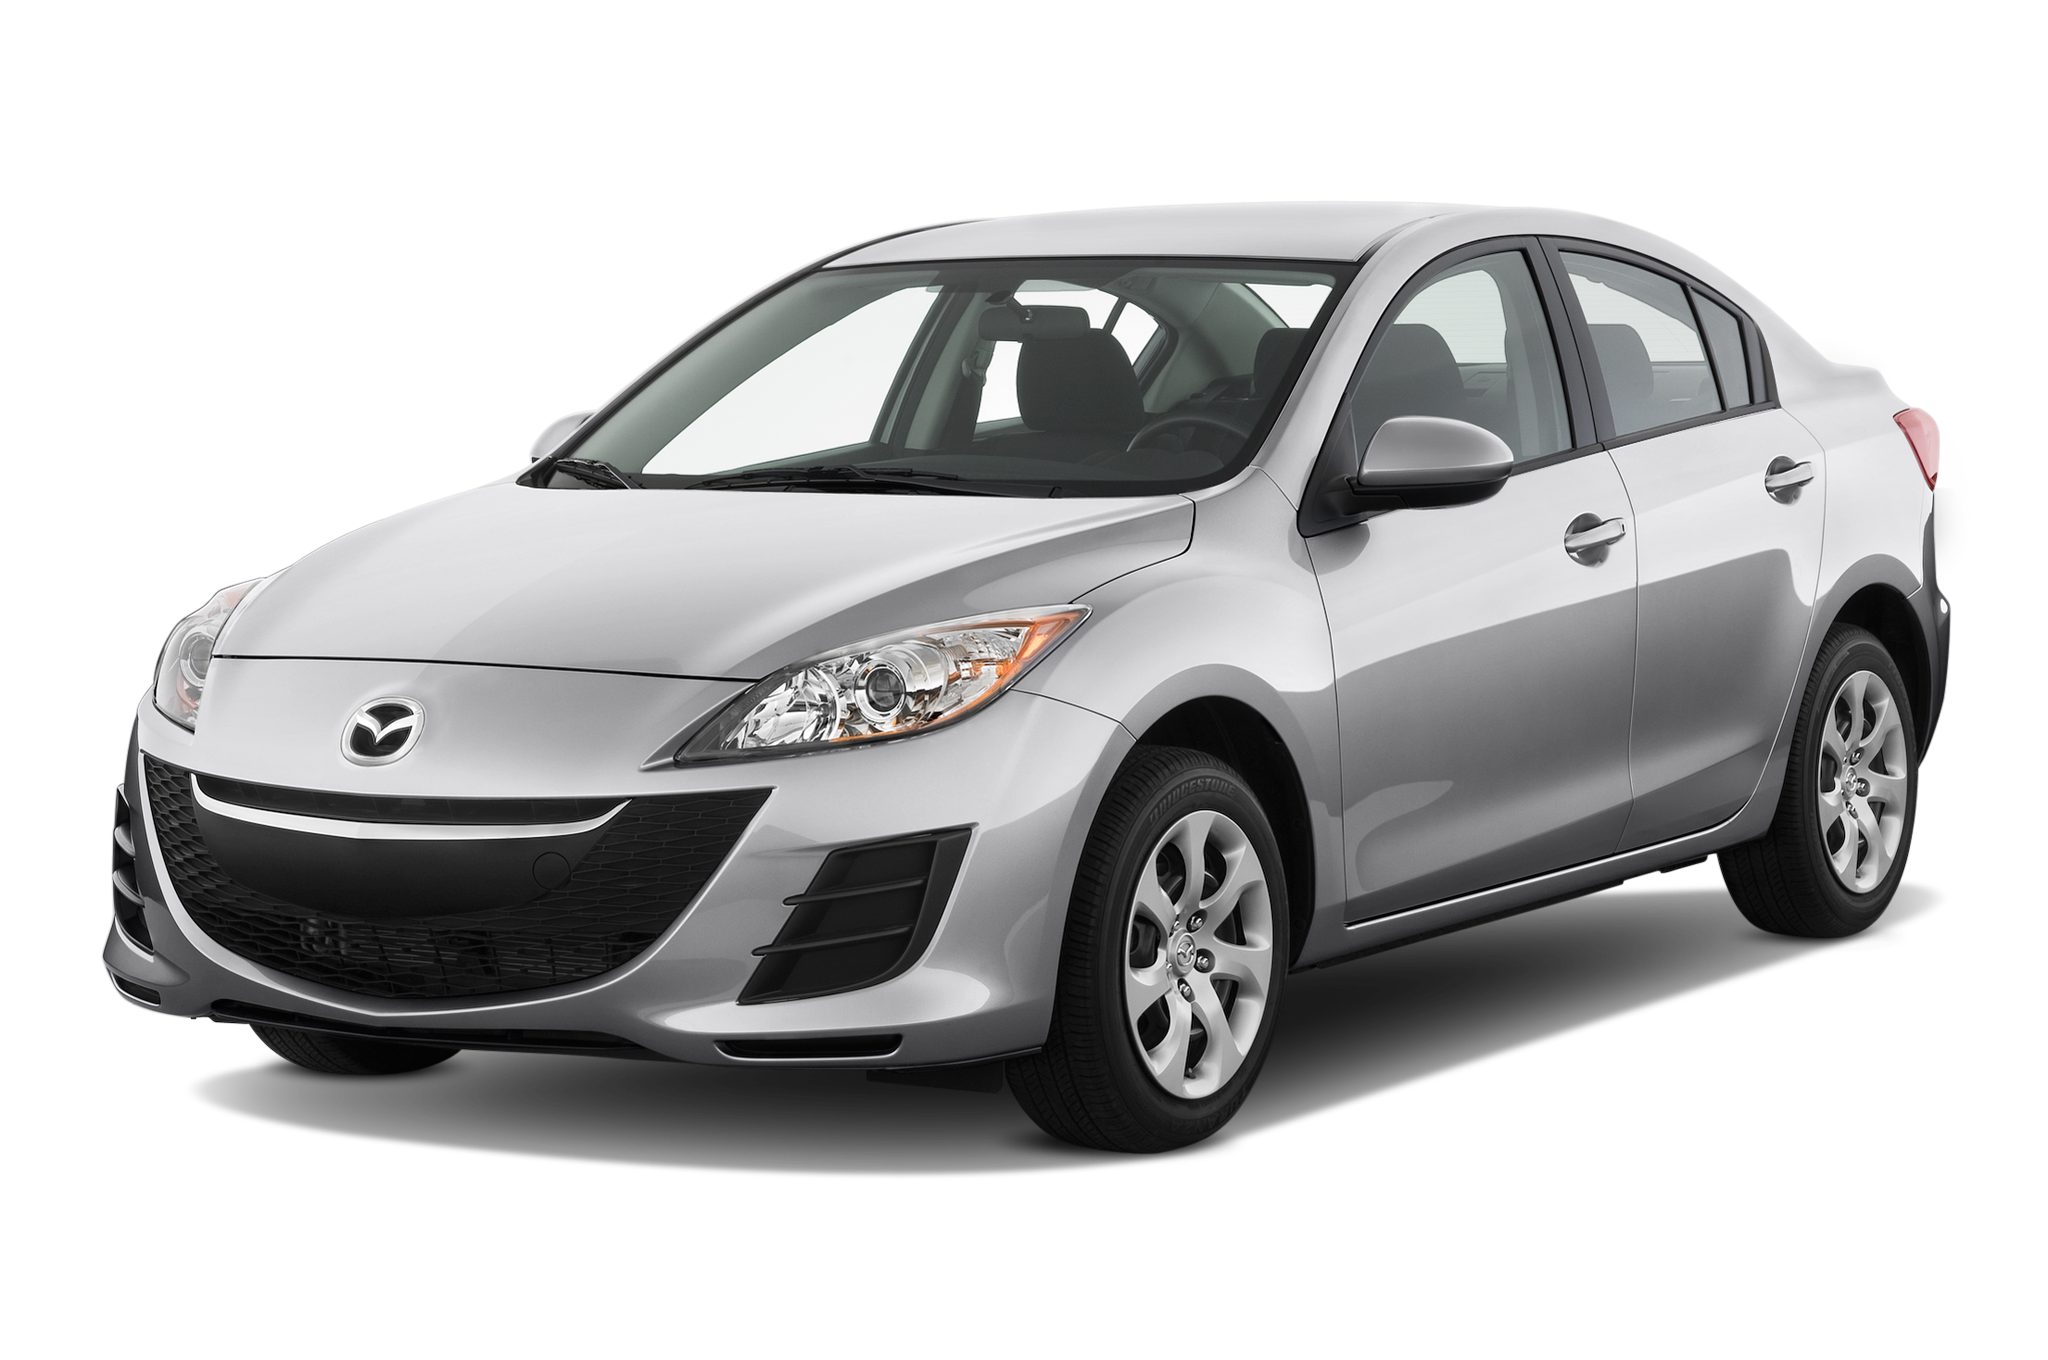 how to get a mazdaspeed 3 in the 12s